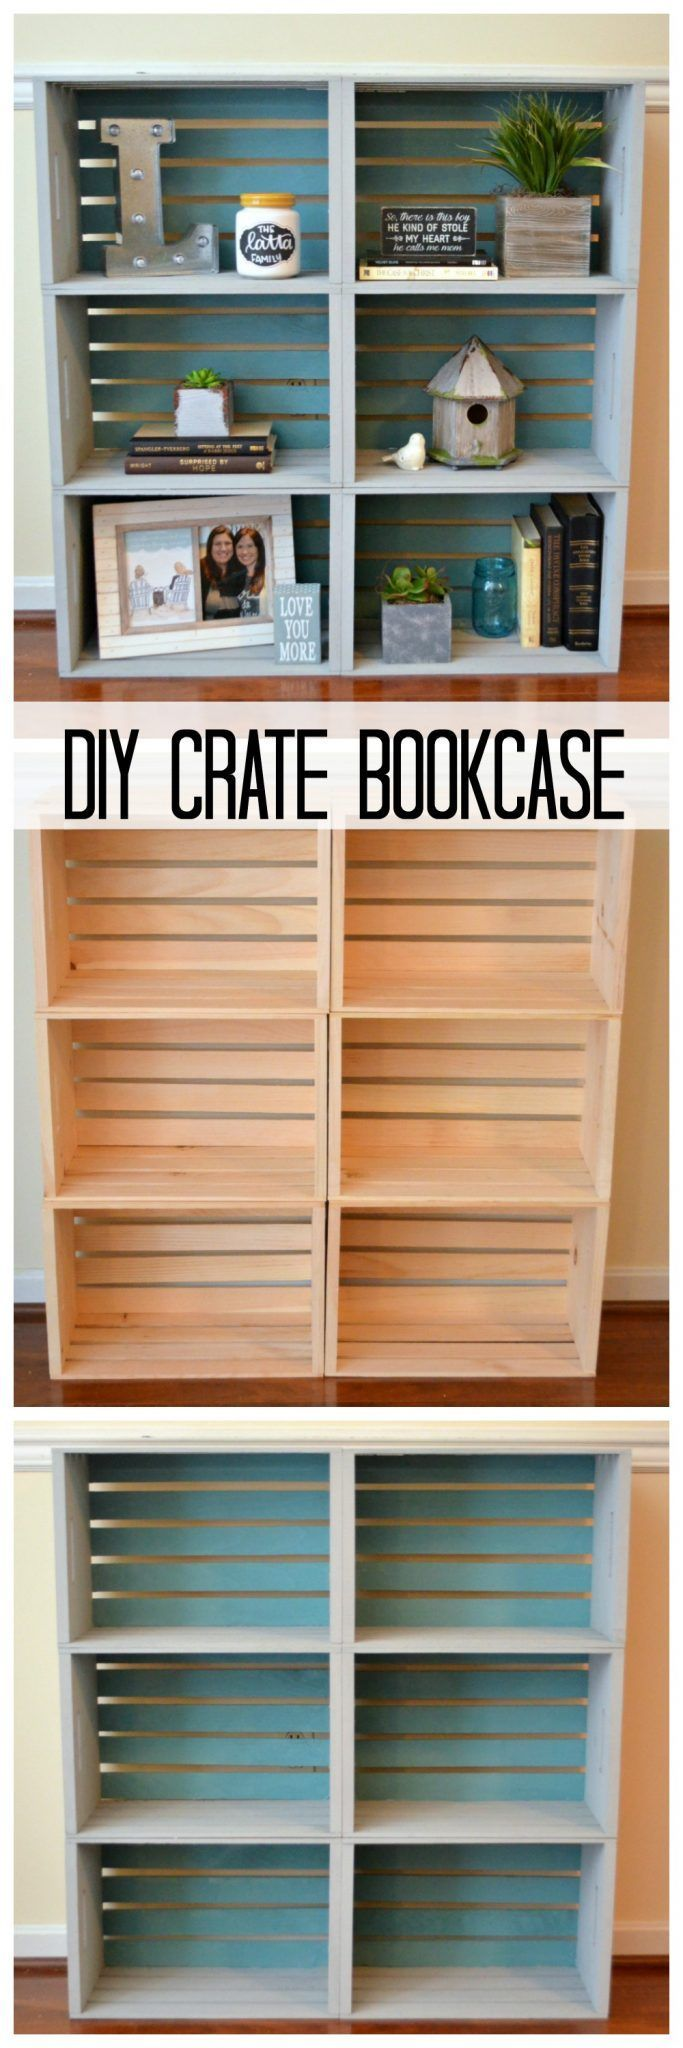 DIY Crate Bookcase - One Artsy Mama